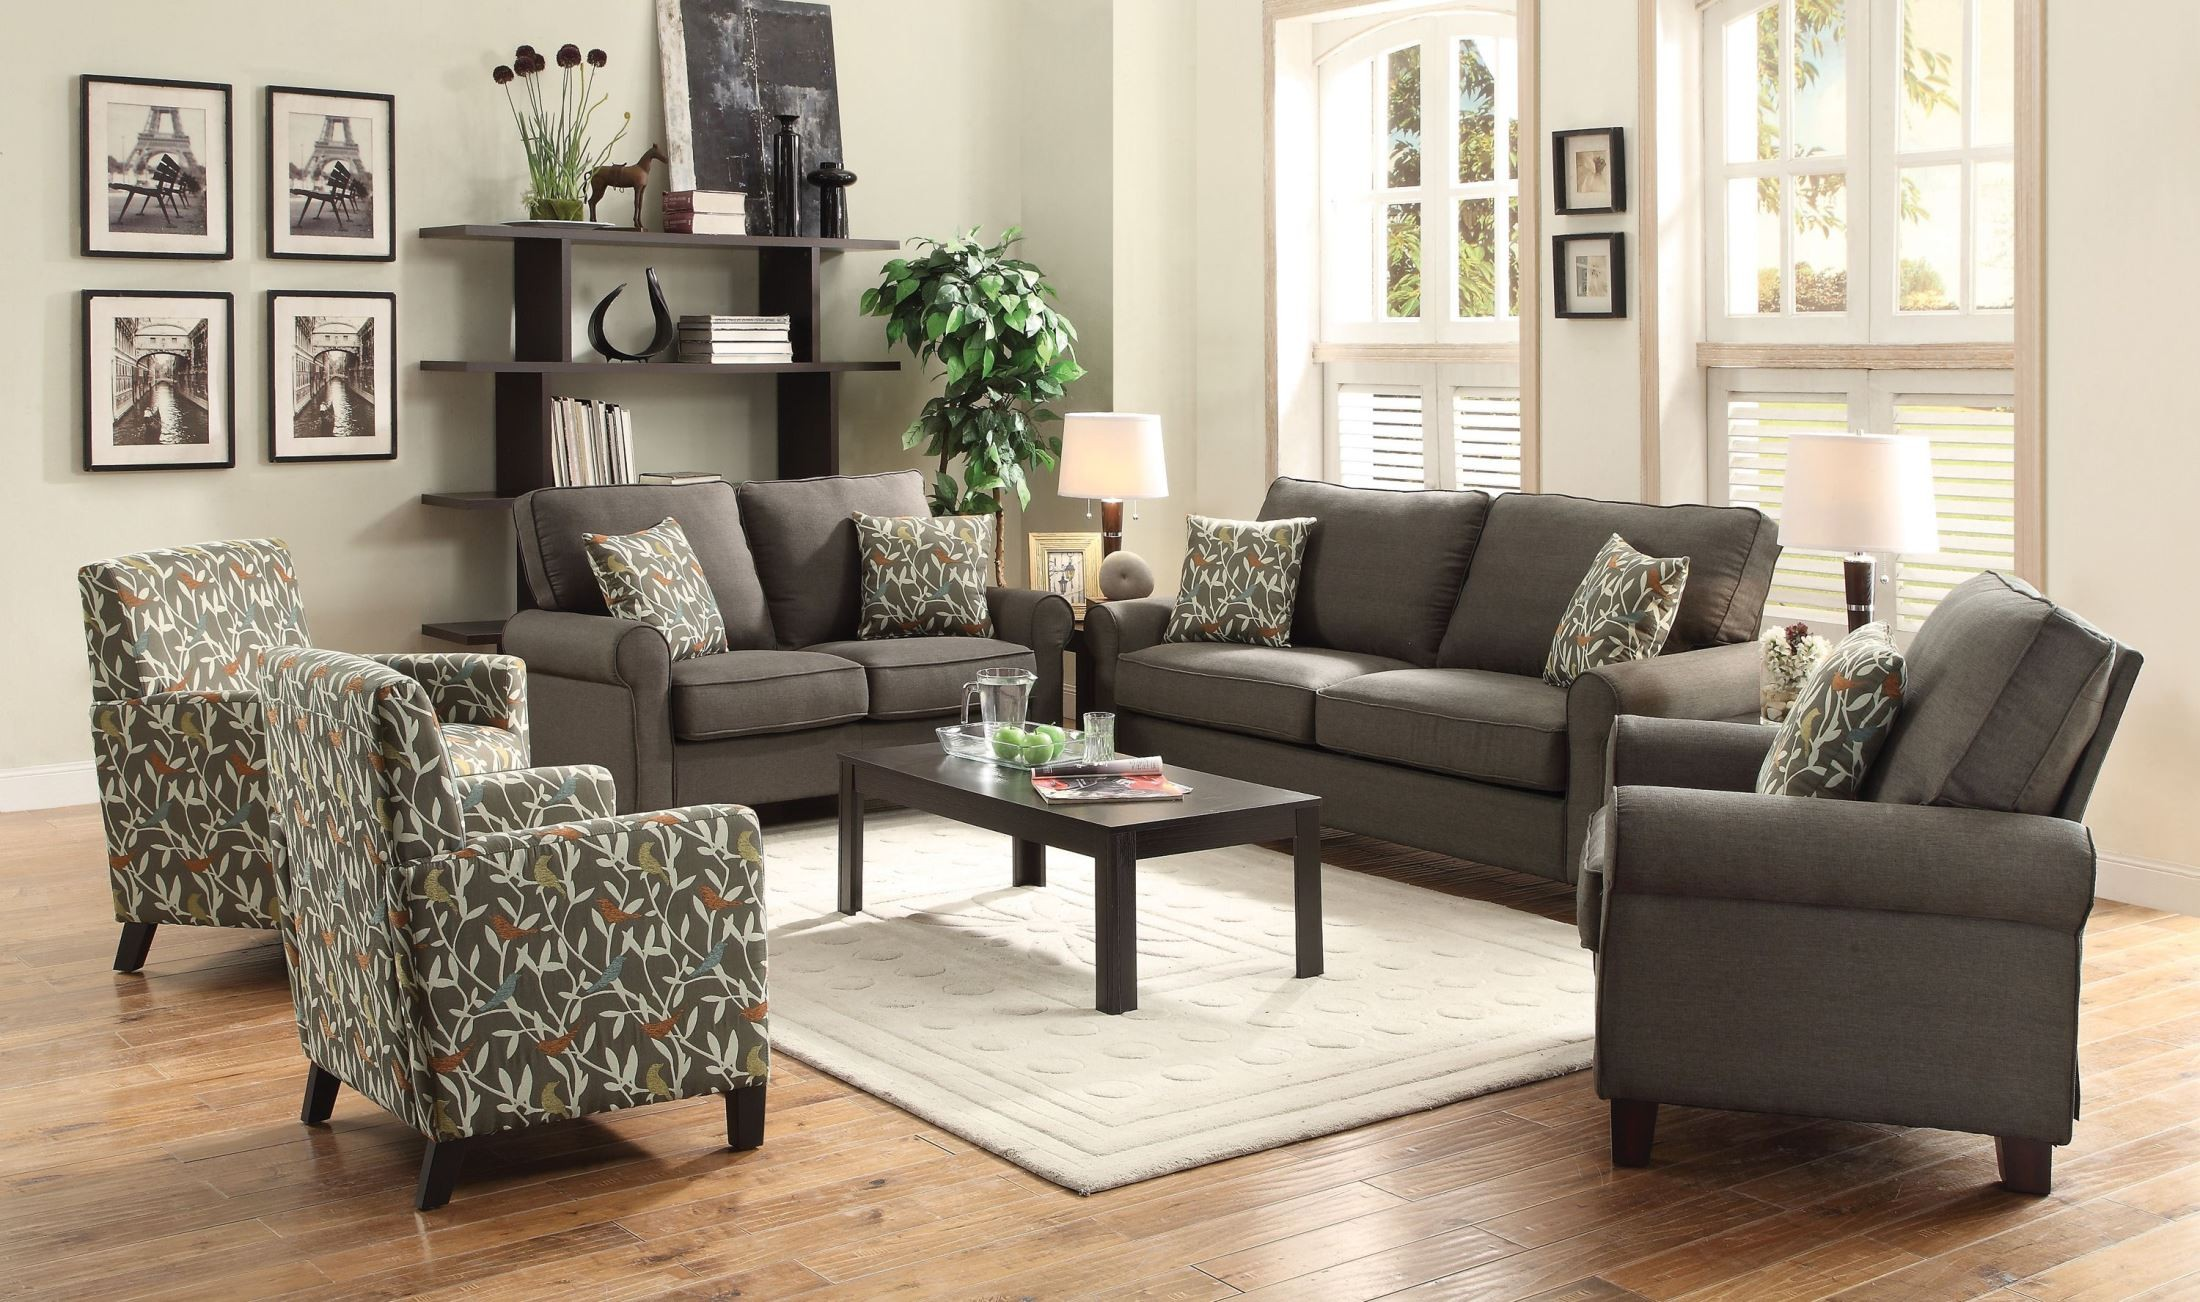 These 6 Pieces Of Colorful Furniture Are Absolute Must Haves: Noella Grey Living Room Set From Coaster (504781